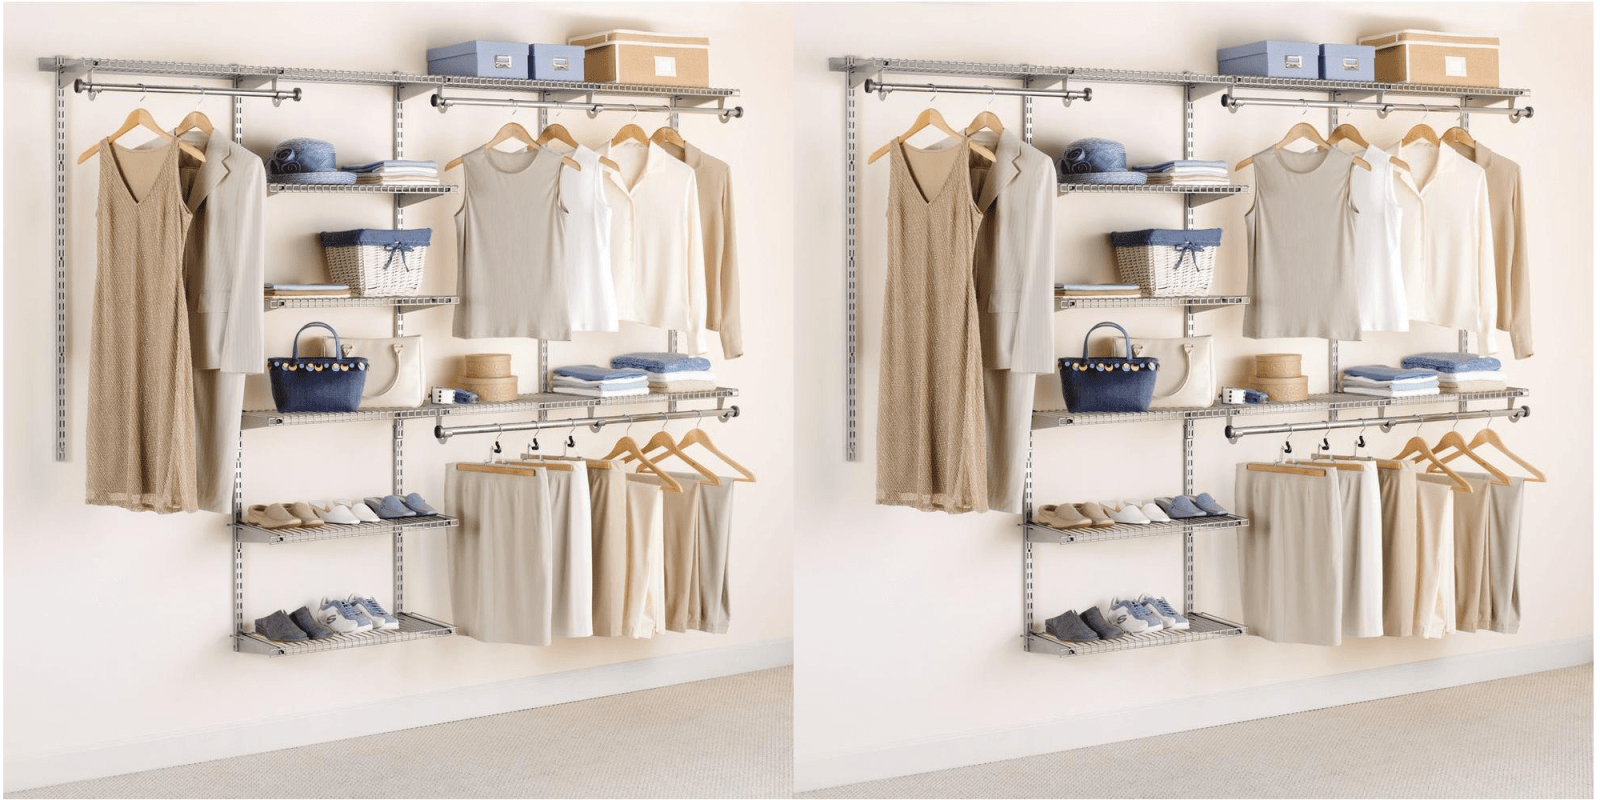 Rubbermaid Closet Organizer Kit hits Amazon all-time low: $73 shipped